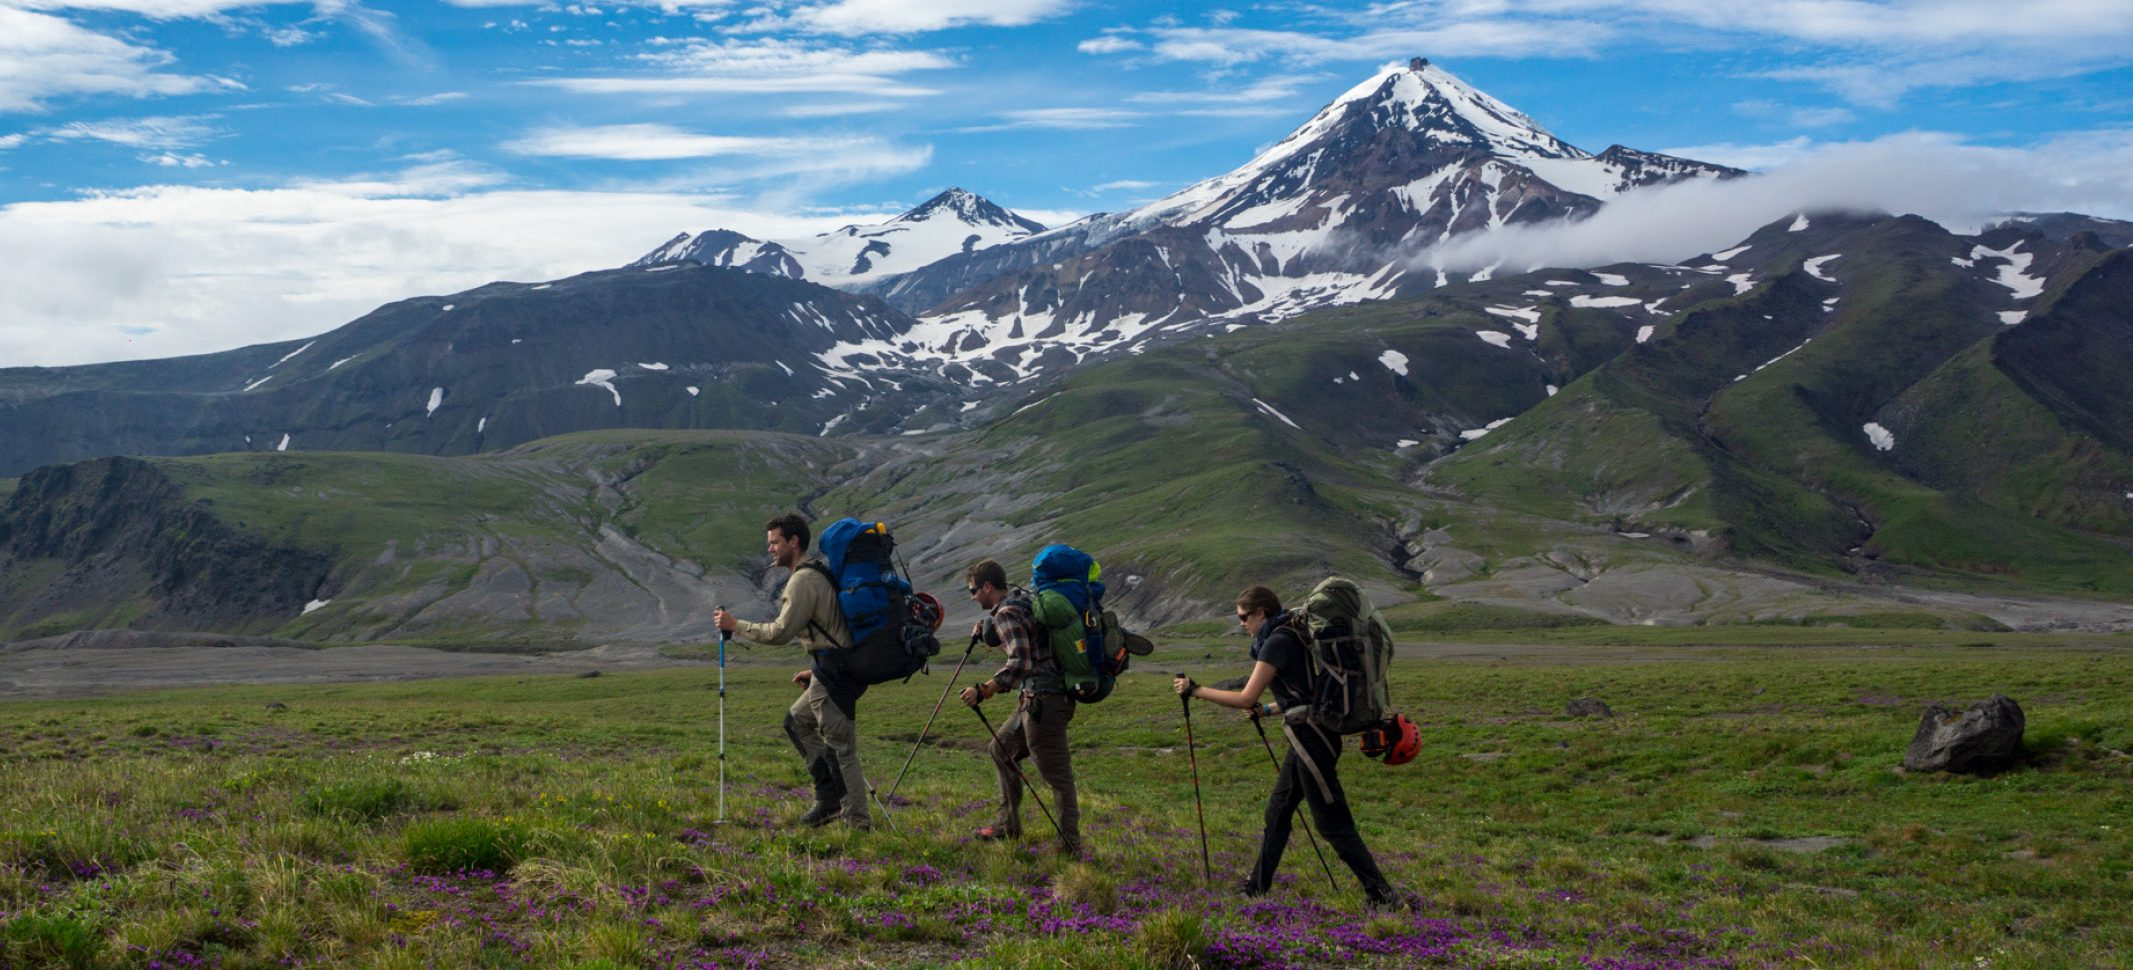 Hiking on the Kamchatka Peninsula © Secret Compass